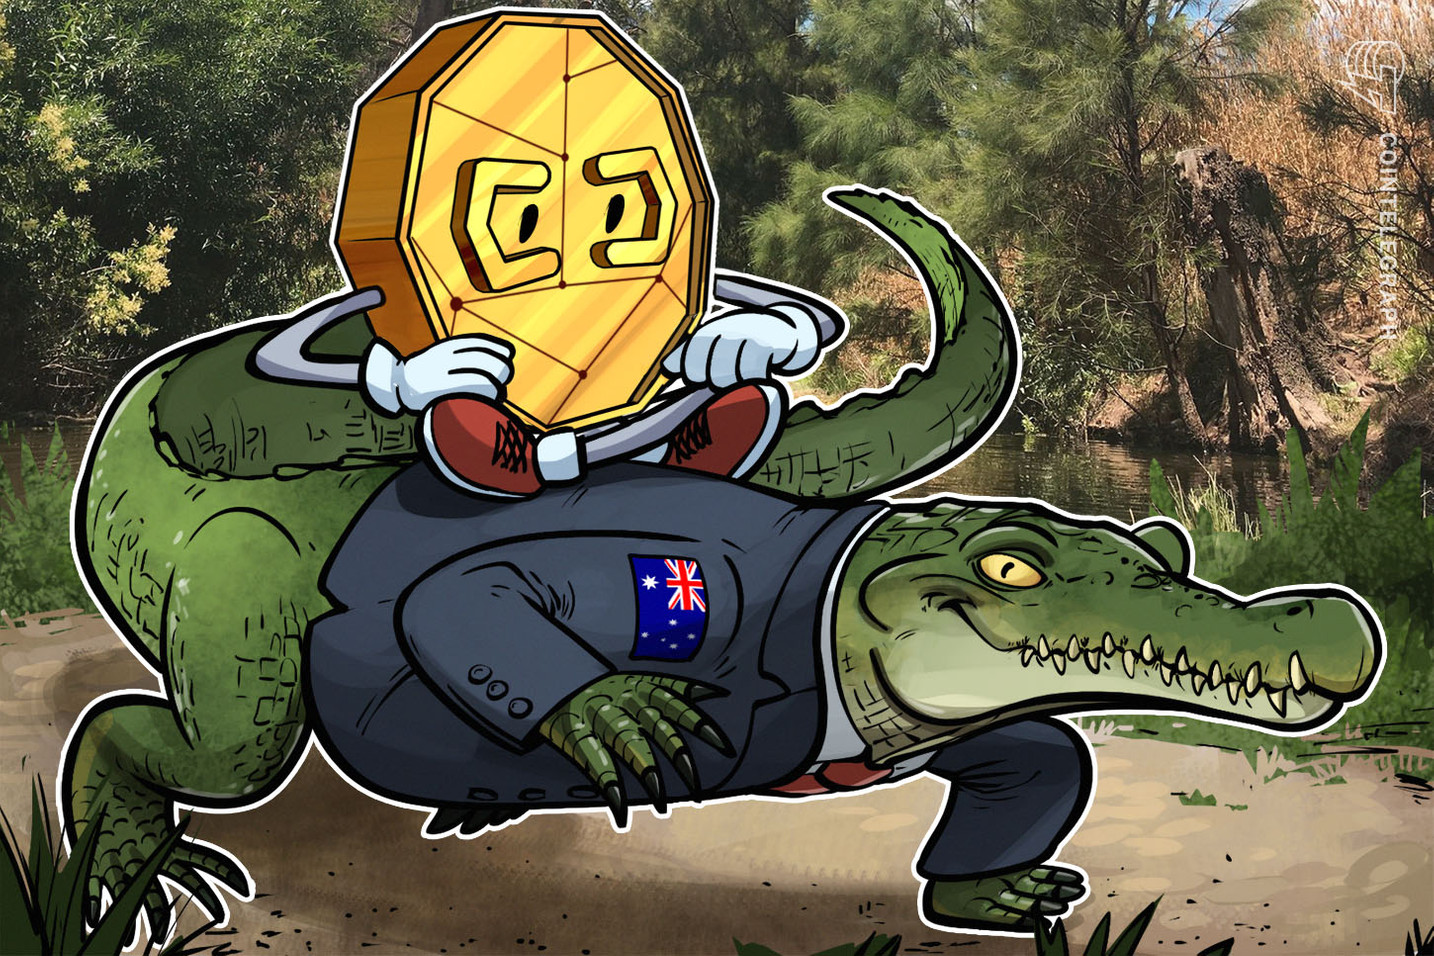 Australia Central Bank Argues Bitcoin 'Unlikely' To Become Mainstream